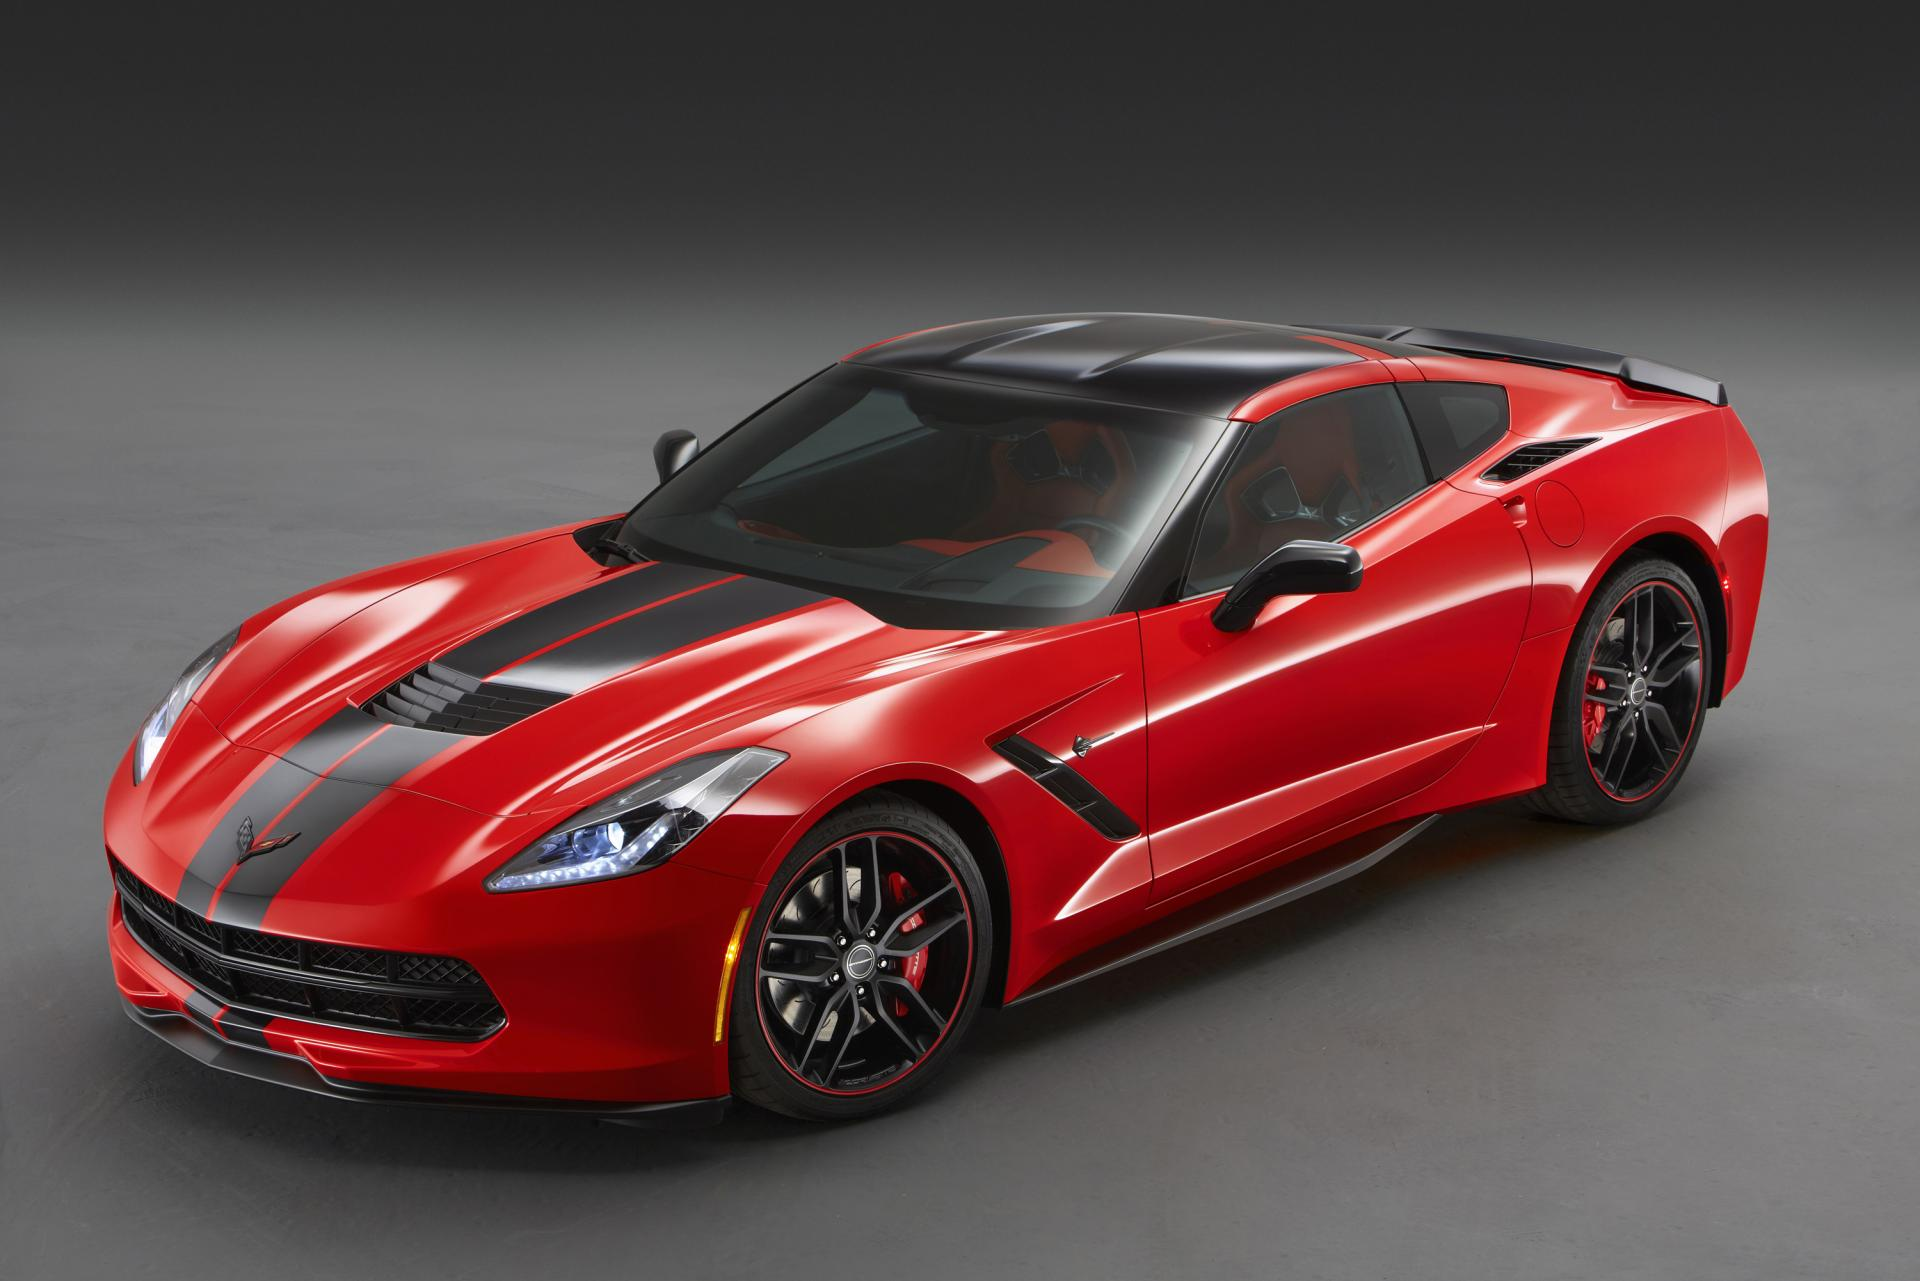 2013 Chevrolet Corvette Stingray Coupe Pacific Concept